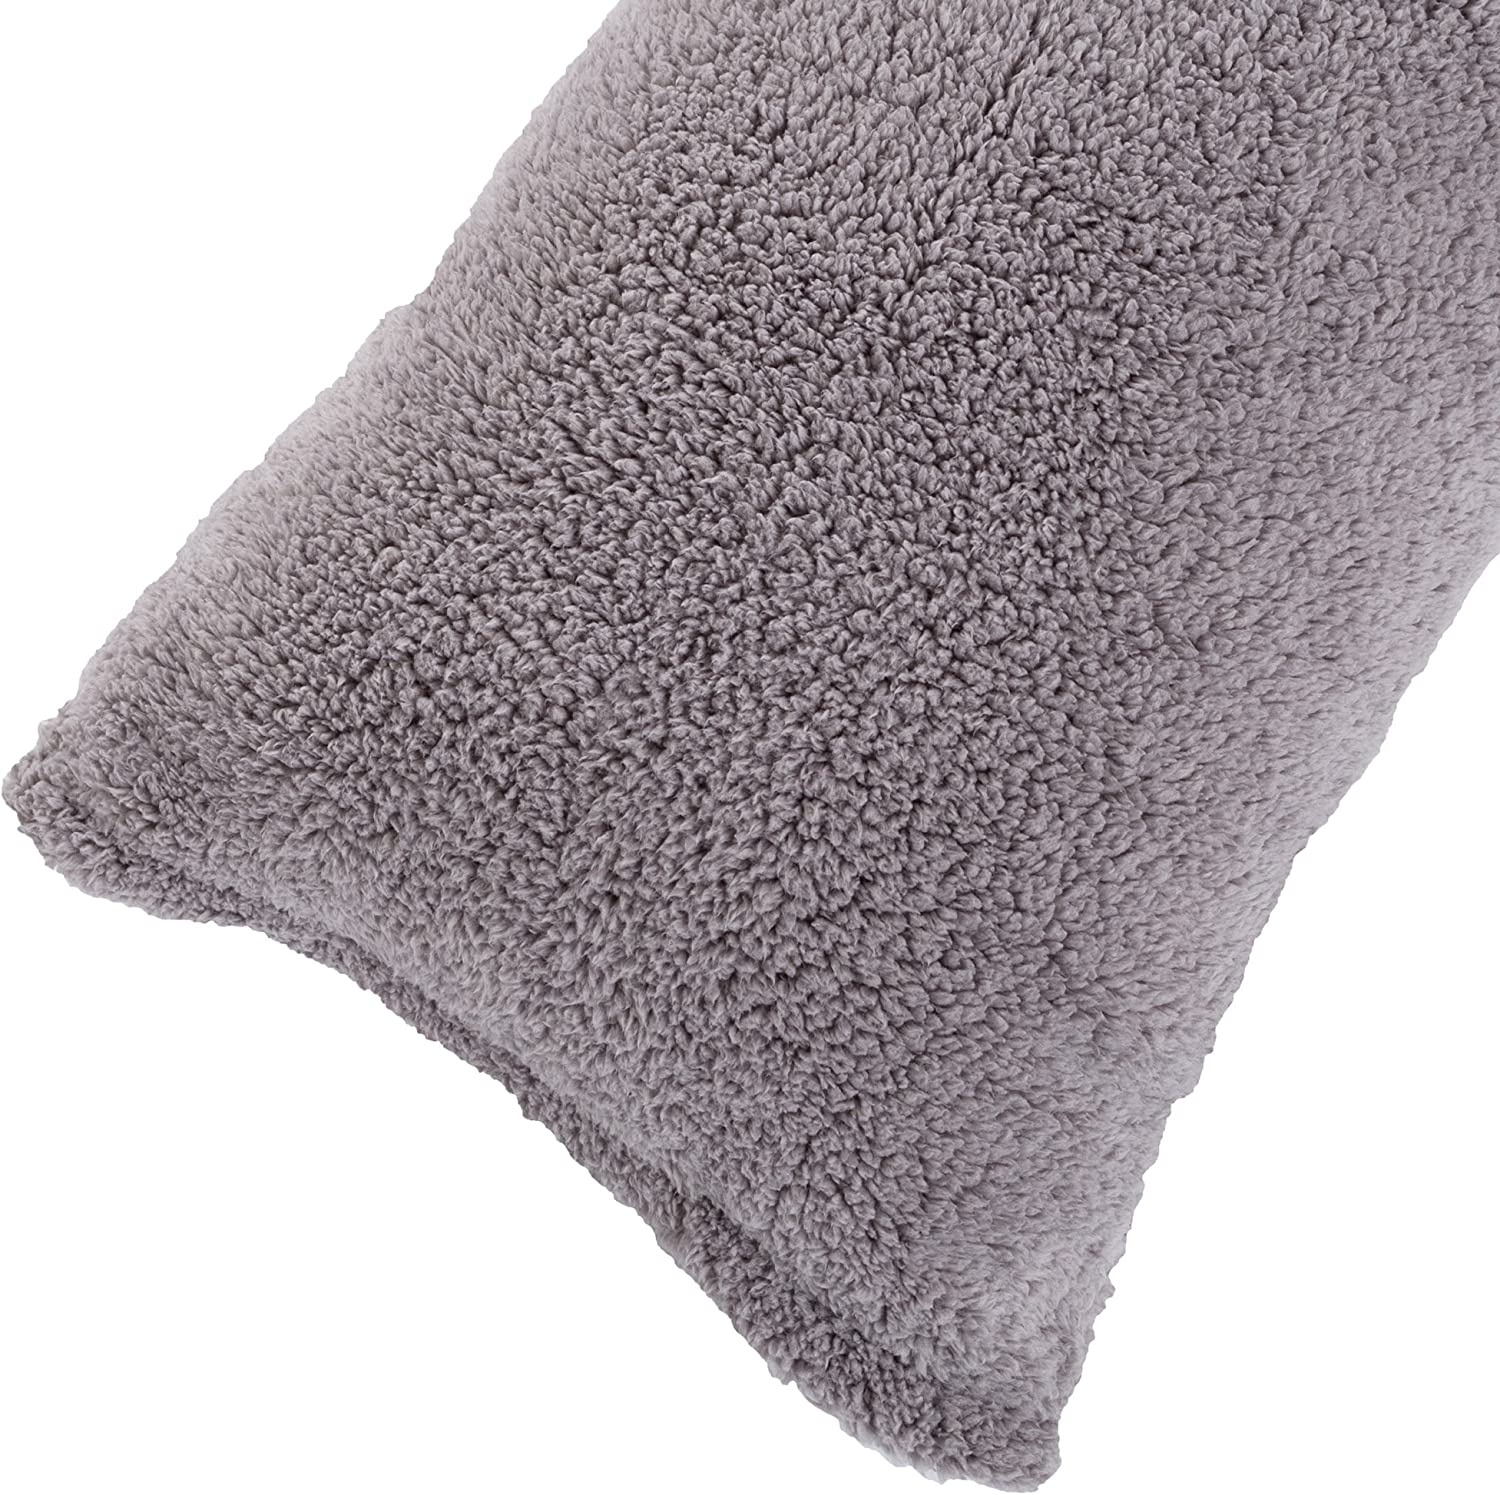 """Body Pillow Cover. Sherpa with side zipper by Lavish Home – 18 """"x52"""